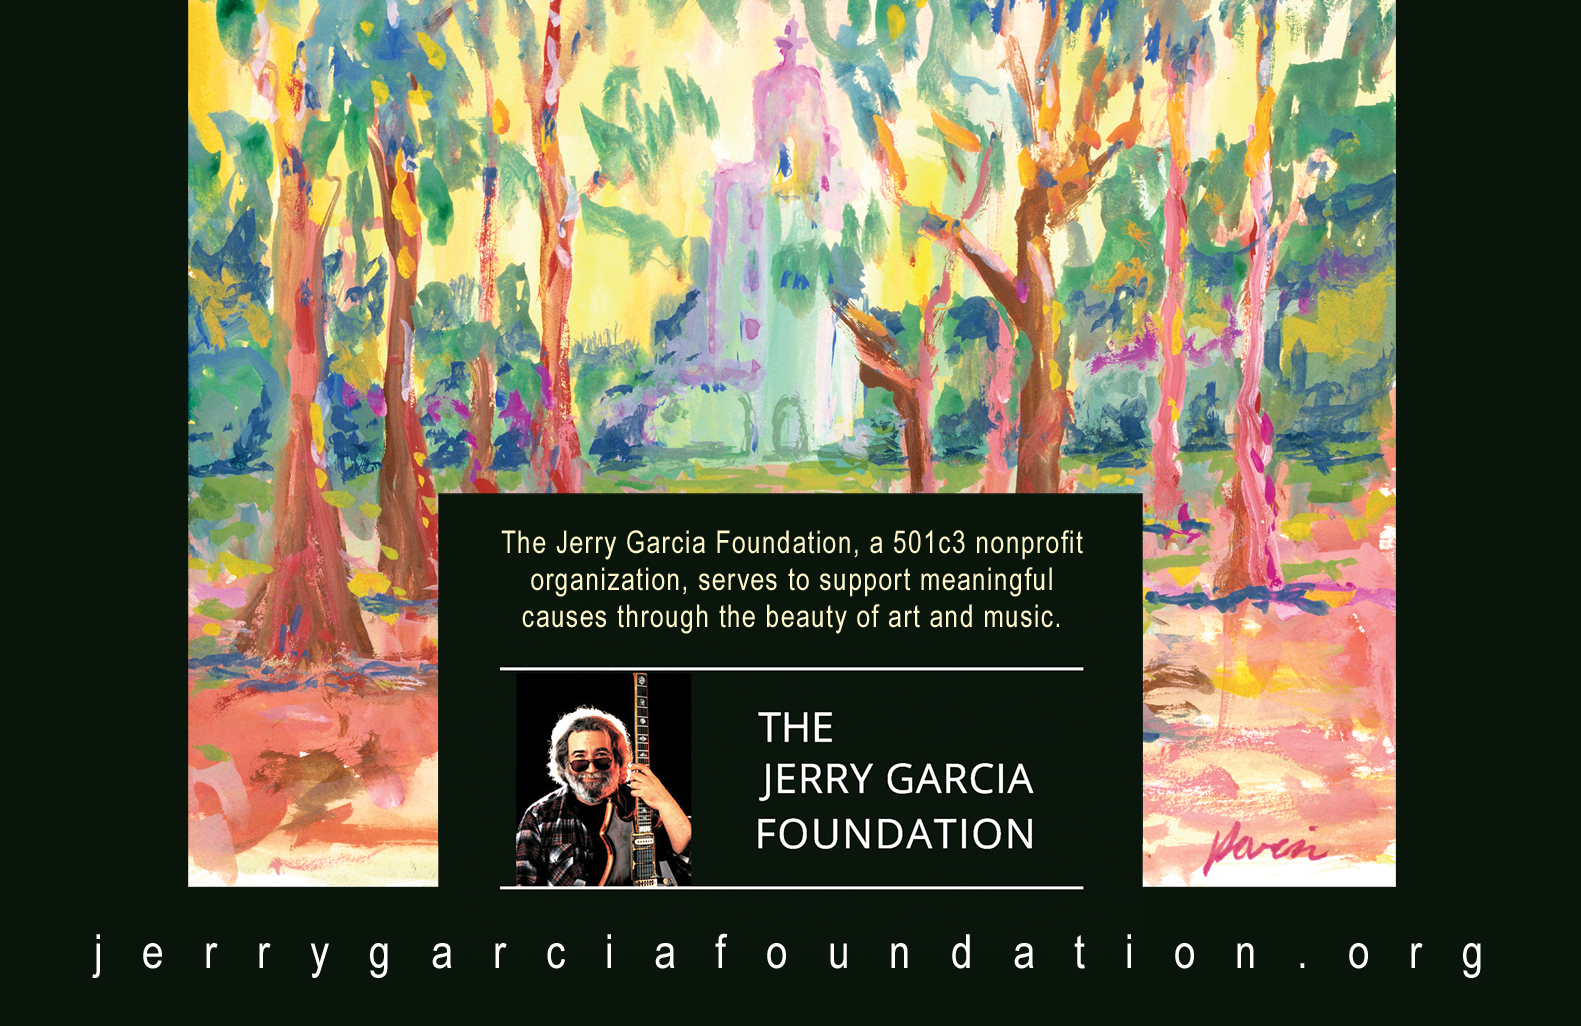 Jerry Garcia Foundation